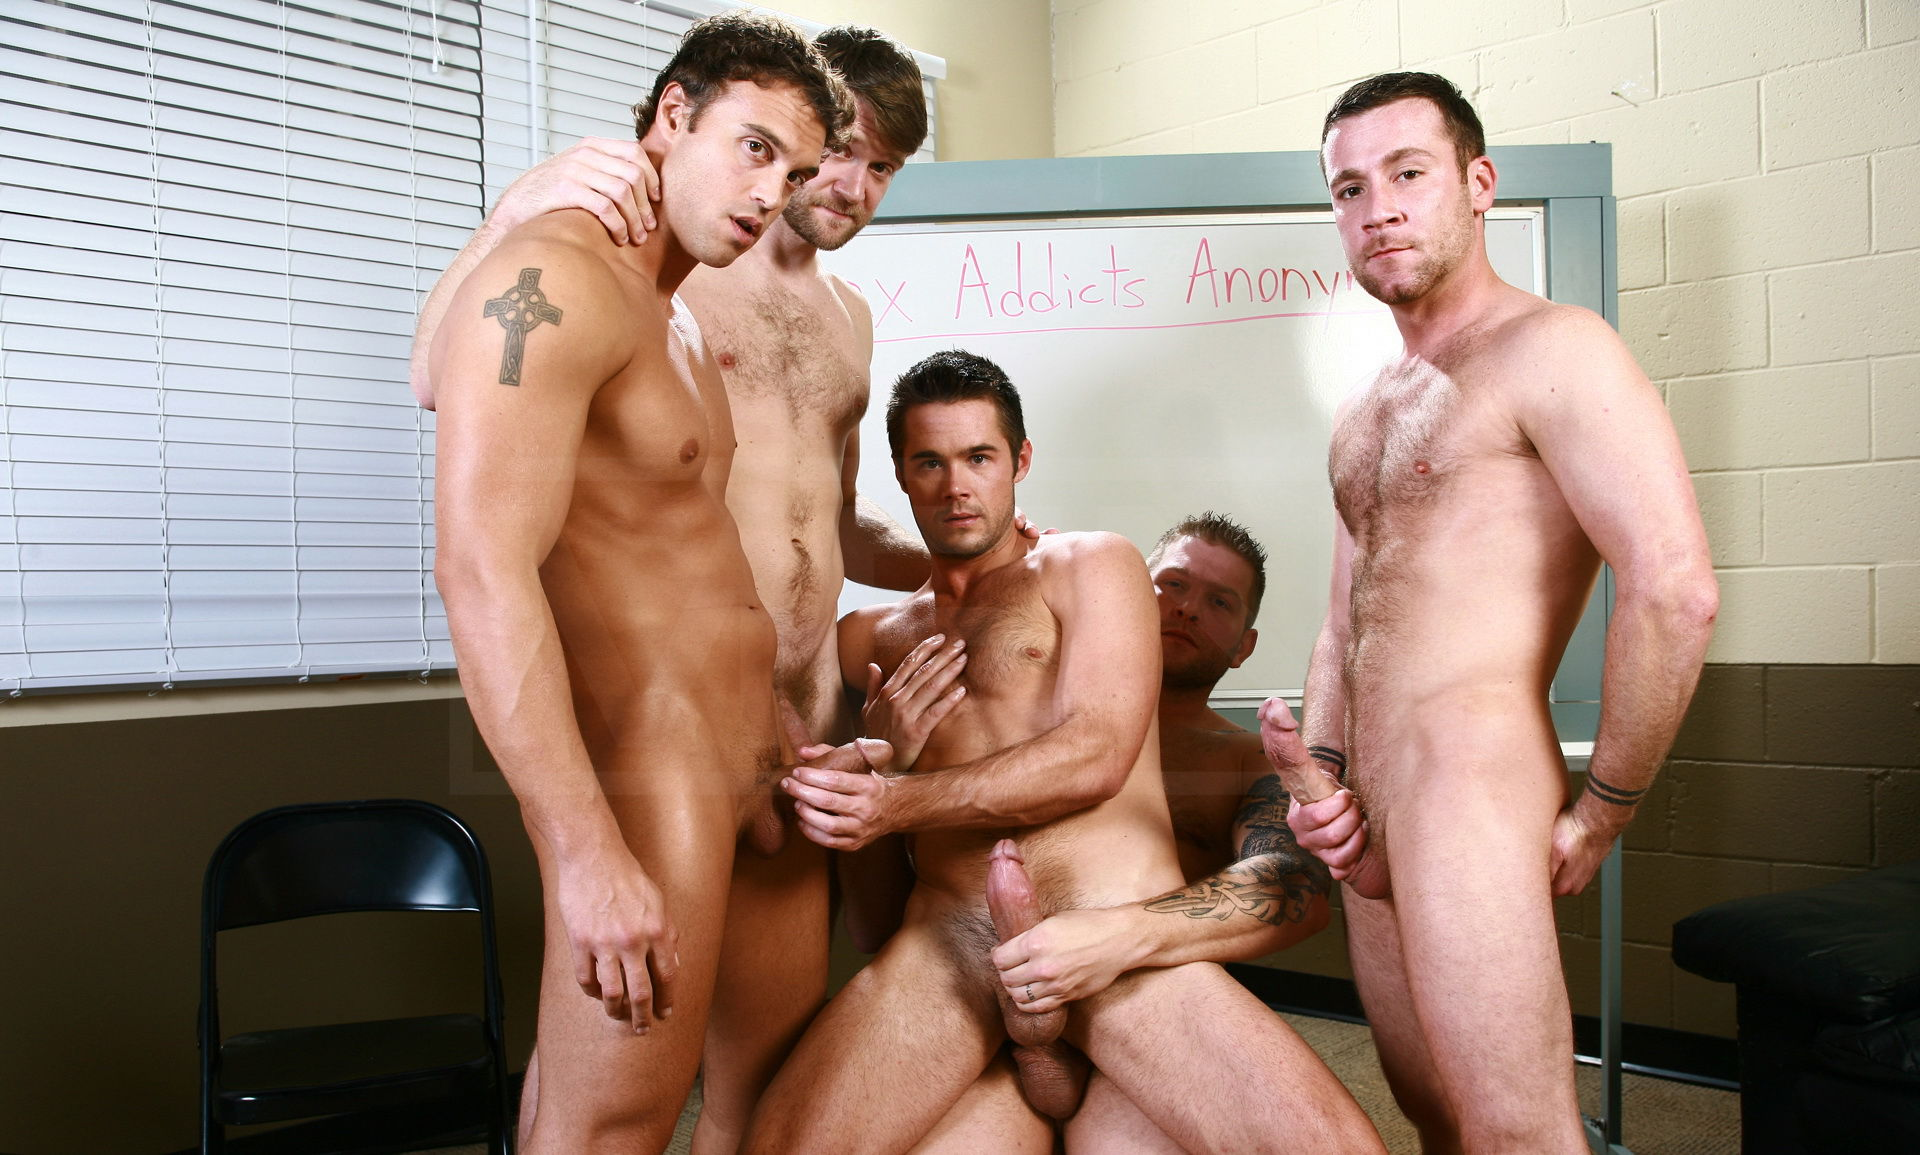 Group sex men nude — 13